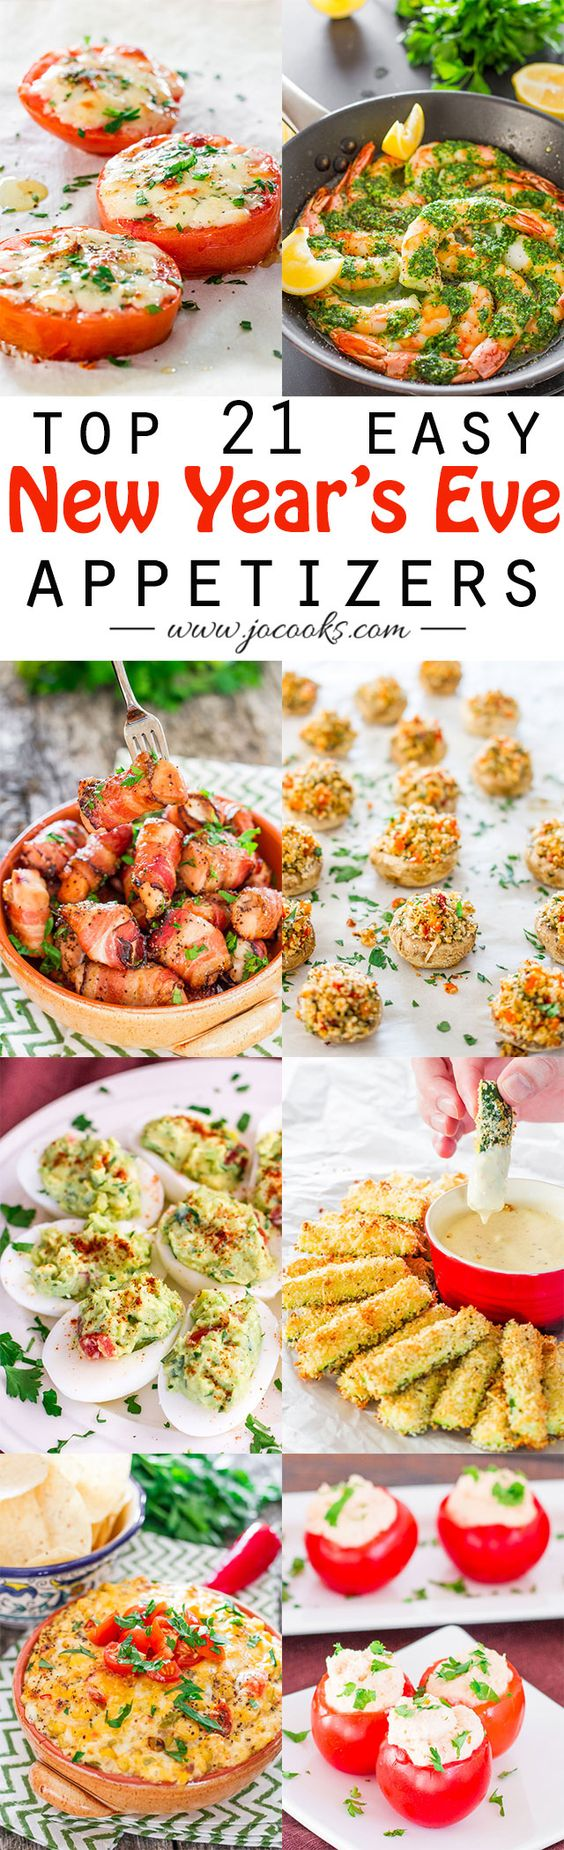 Are you looking for easy healthy appetizers recipes? Let's talk about those cute Spinach Balls appetizer As you guys know by now I grew up in France in a healthy foodie family. My grandma growing all our vegetables and mums cooking ALL our meals. Mums always had an obsession for spinach. I.